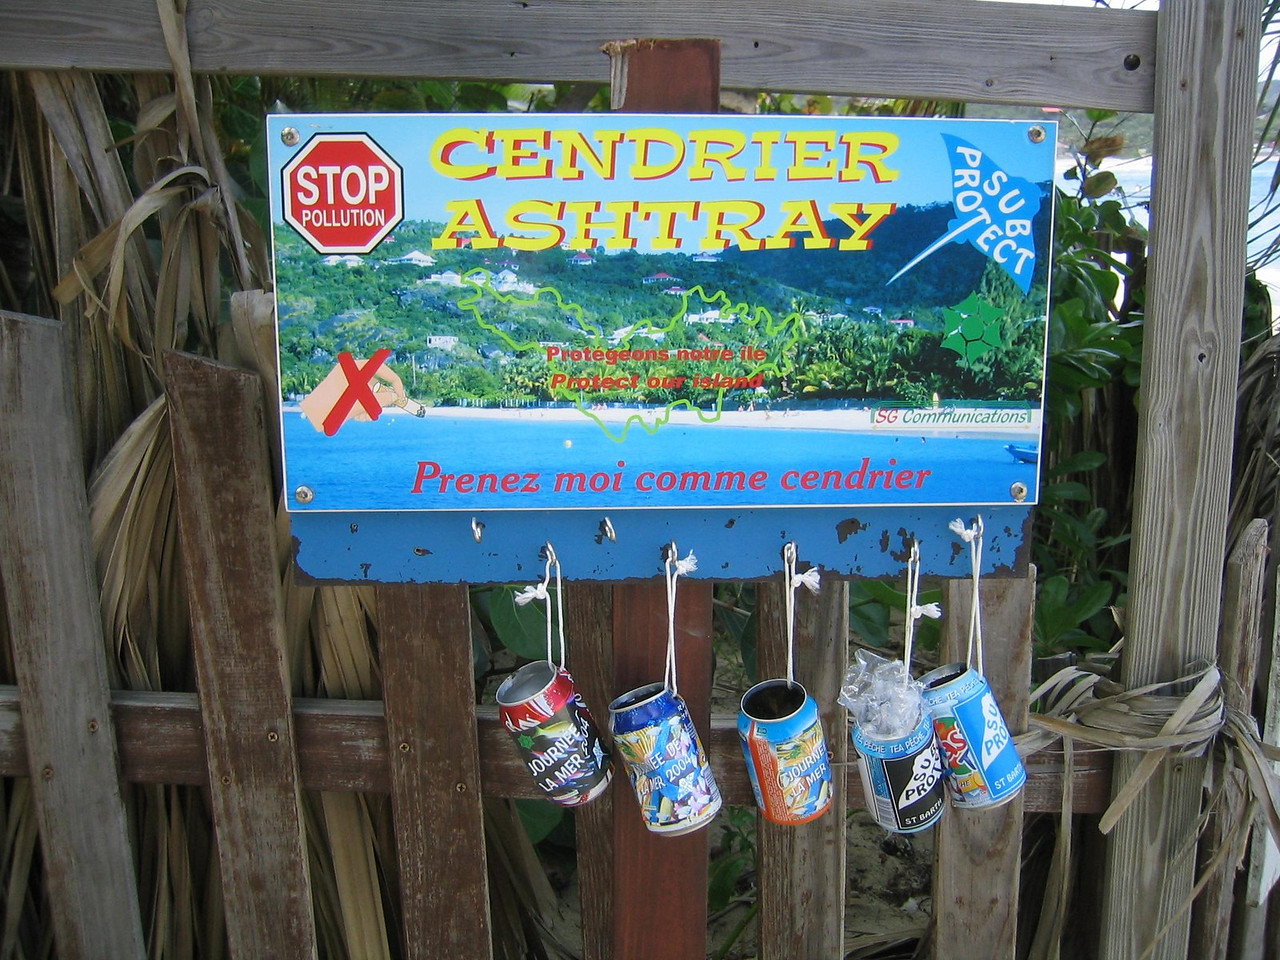 To help reduce litter on the beaches, people have hung cans near the entries to the beaches, asking people to use them for their ashtrays and butts.